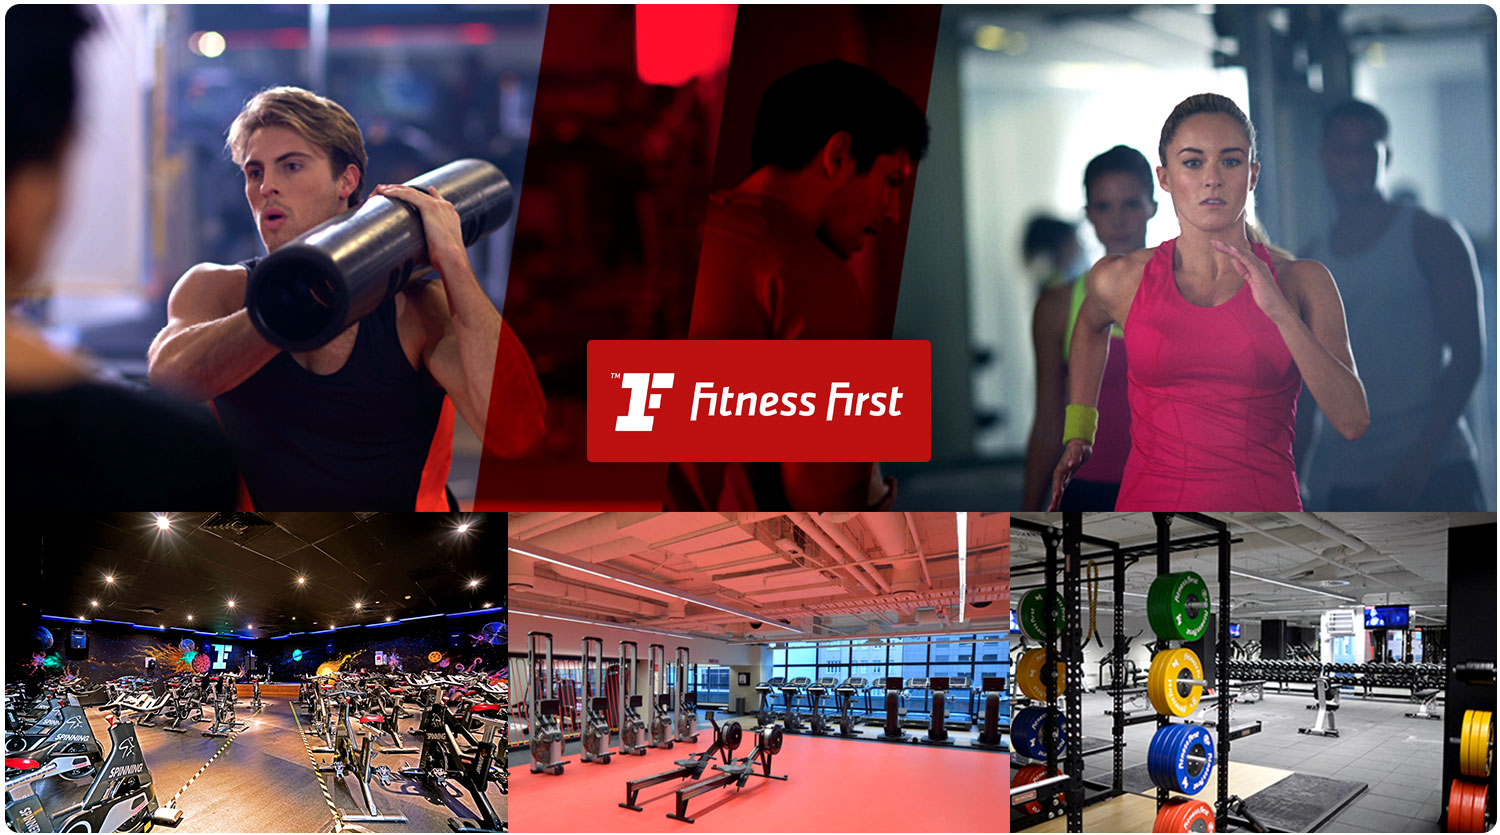 Start your Fitness Journey with Fitness First with only $14.95 for 14 days at Fitness First Richmond VIC. Experience our first class gym and freestyle classes inc. Pilates, Yoga, HIIT, Boxing, Les Mills and more. Take the first step with Fitness First Richmond VIC.